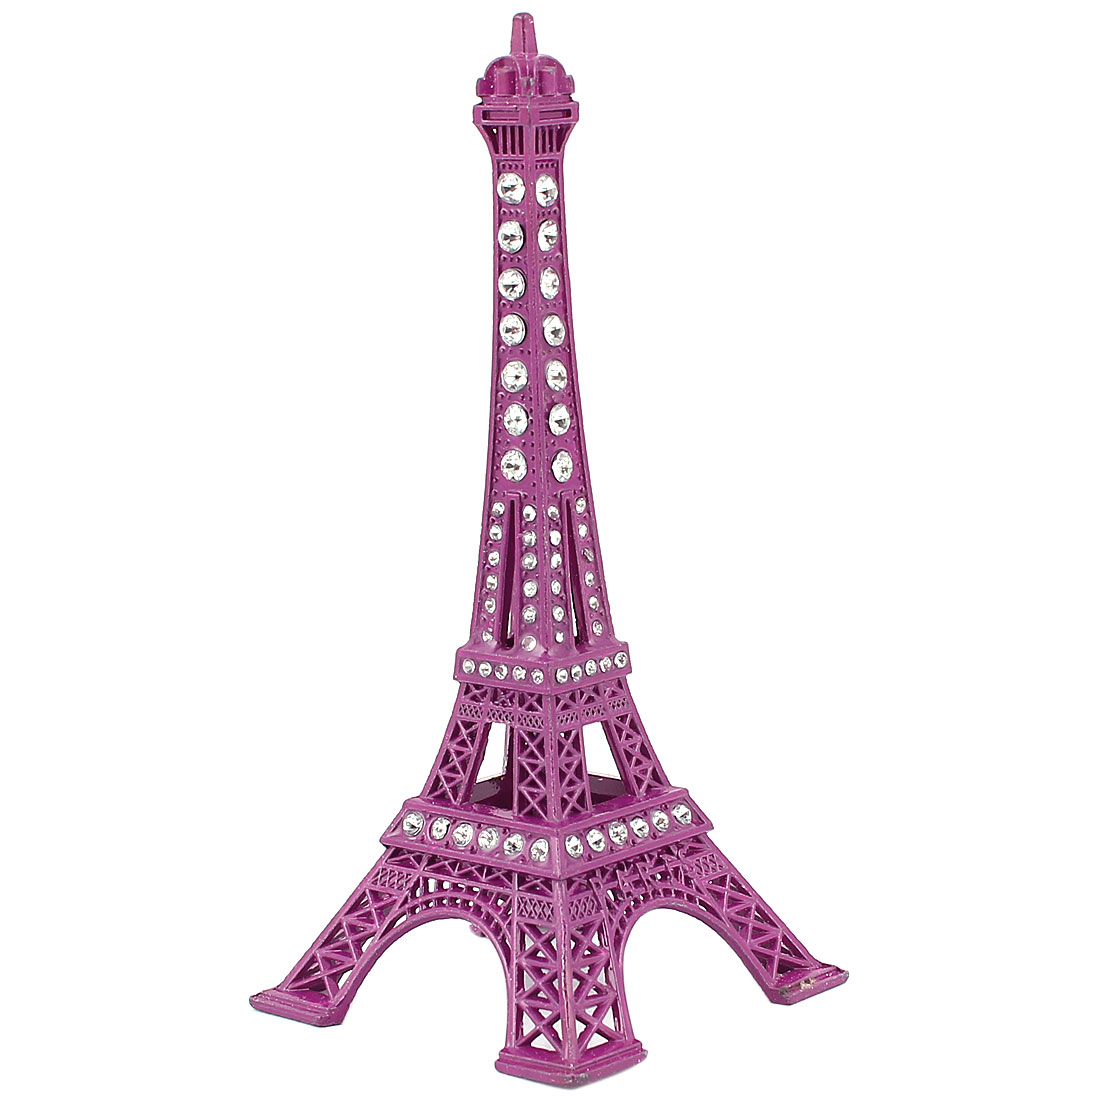 Metal Paris Miniature Eiffel Tower Model Souvenir Decoration Plum 5.1""